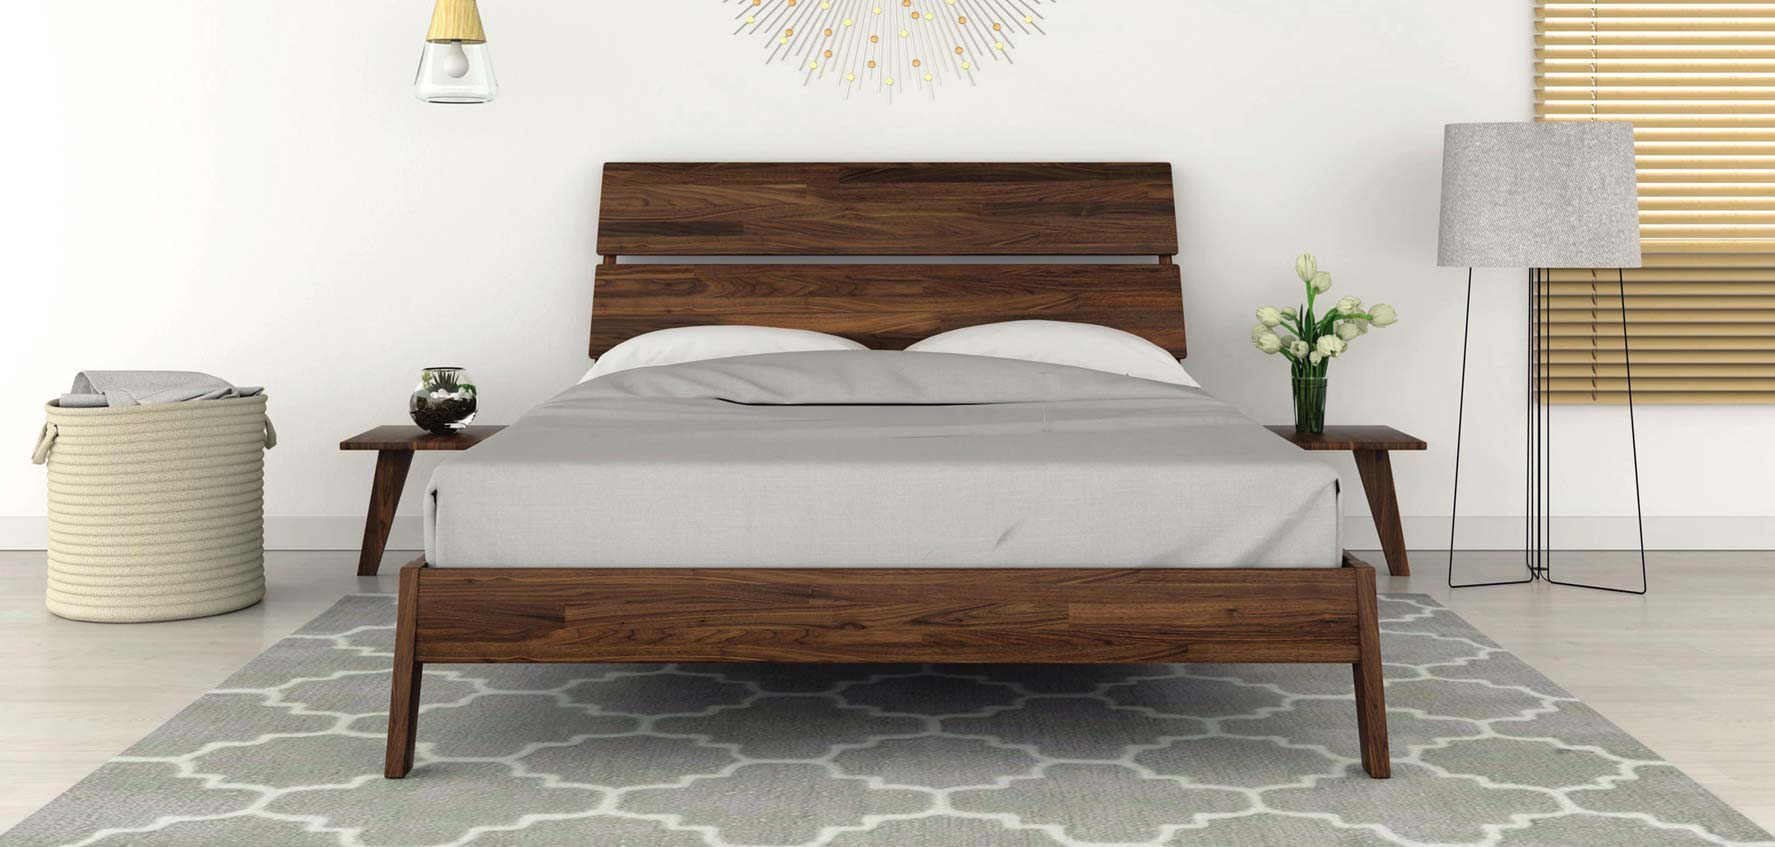 Lynn Bed by Copeland Furniture with an eco friendly GreenGuard Certified lacquer finish